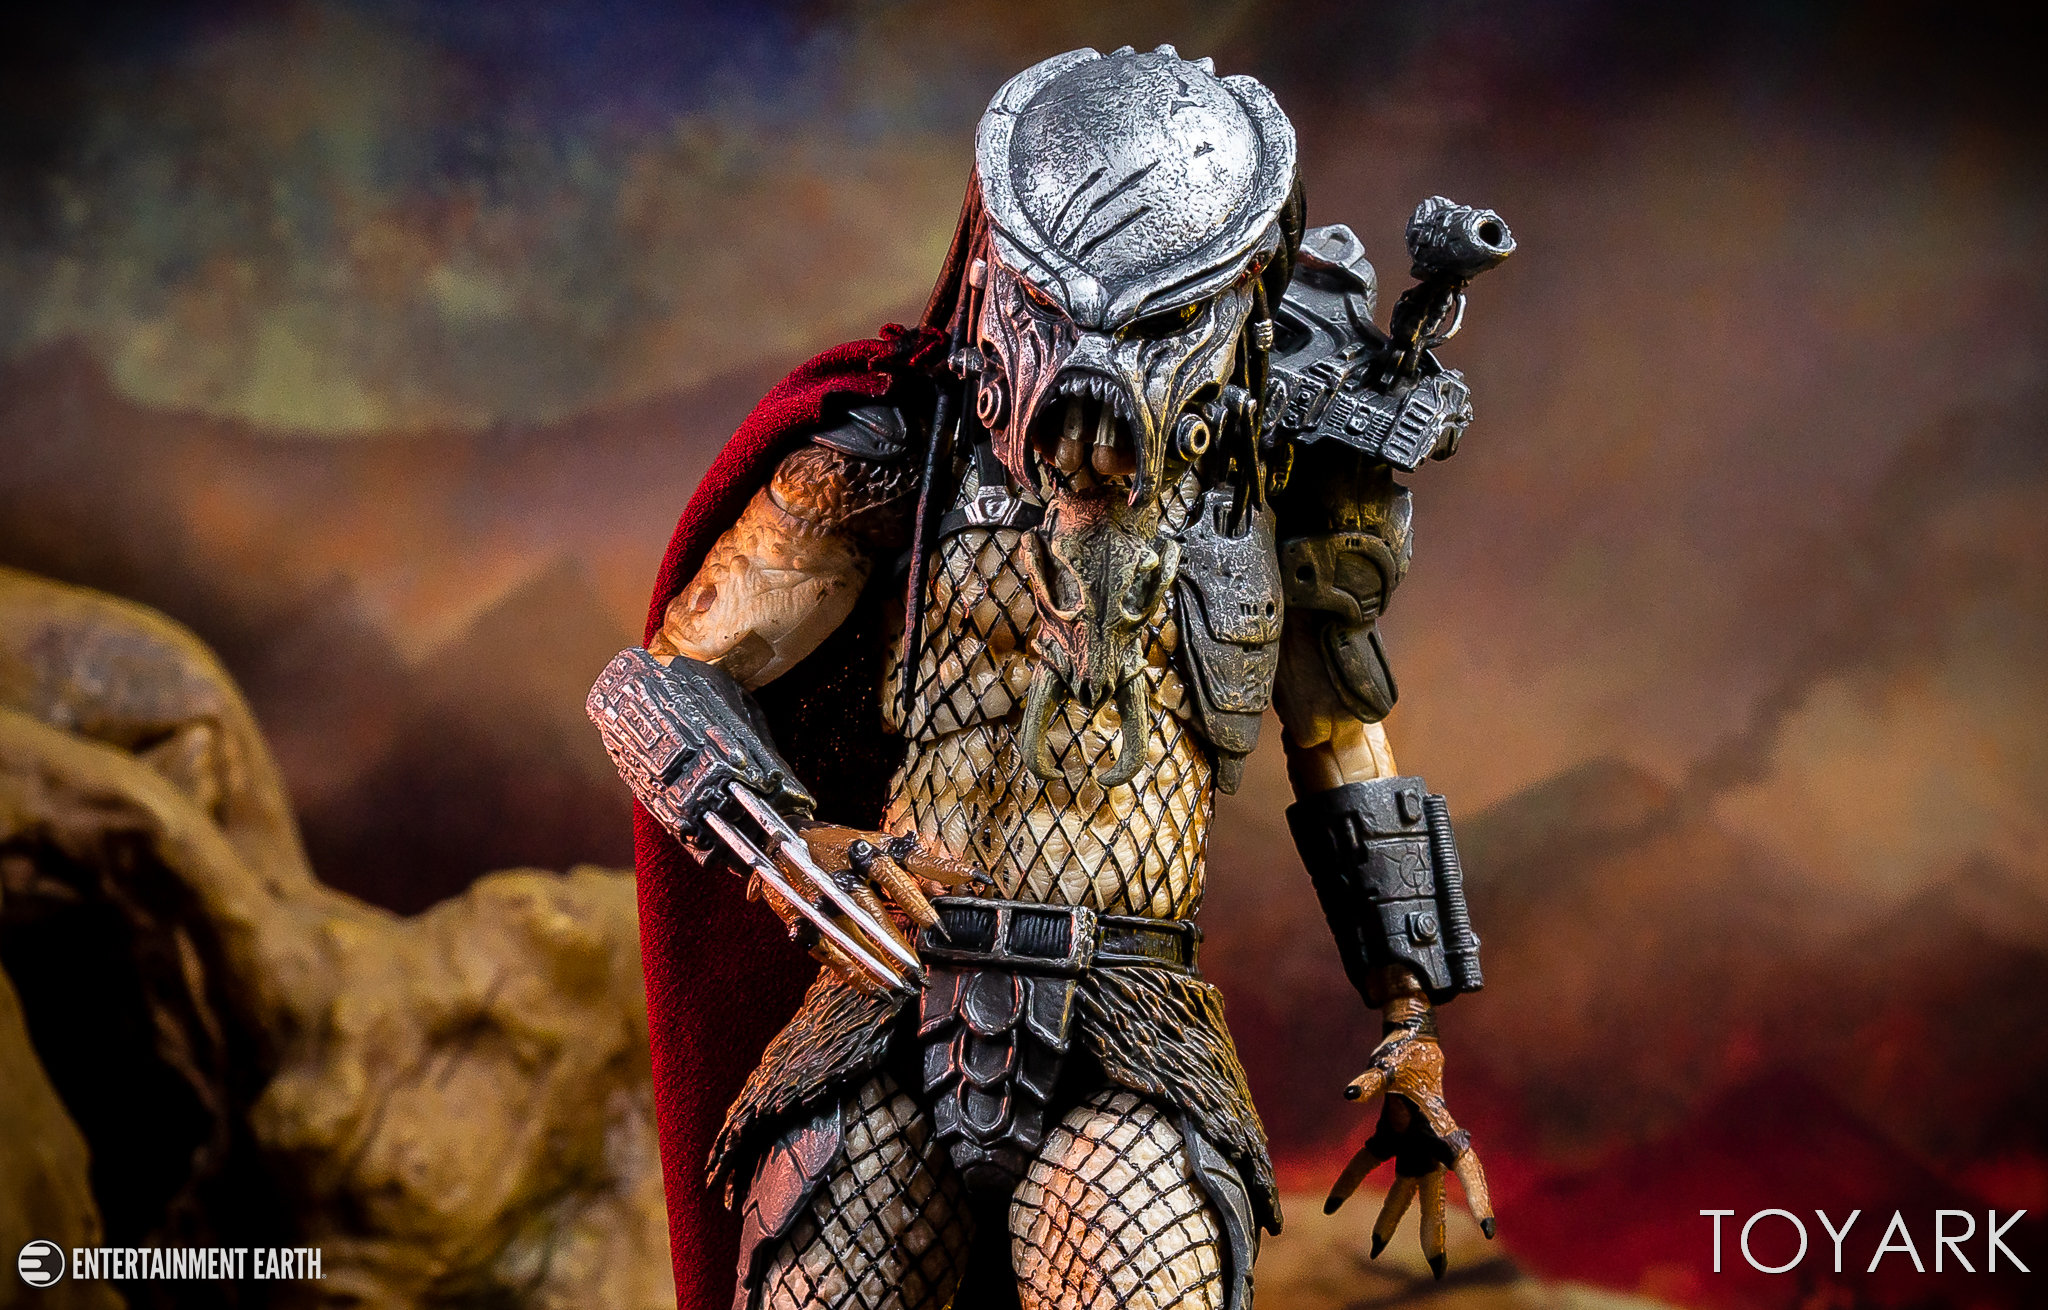 https://news.toyark.com/wp-content/uploads/sites/4/2018/11/NECA-Ultimate-Ahab-Predator-036.jpg